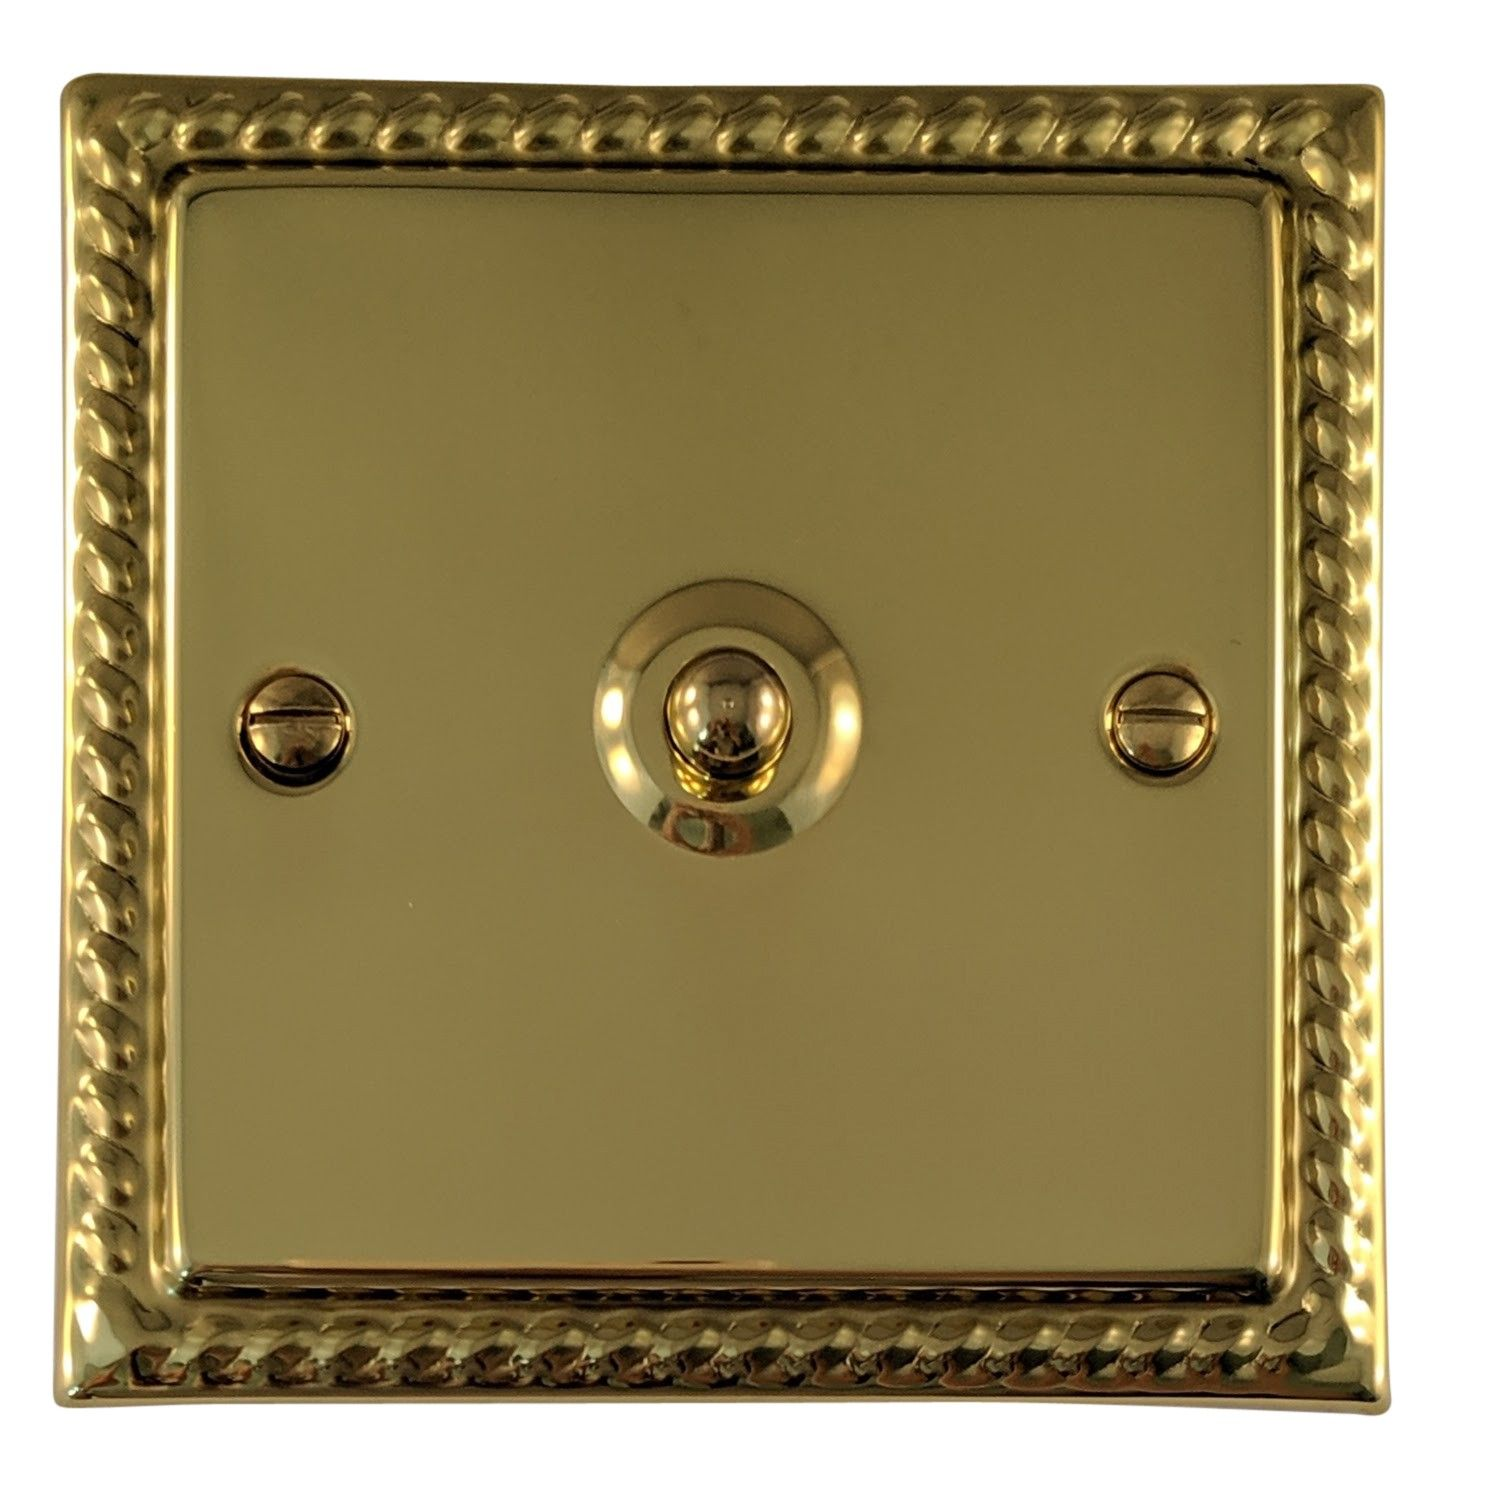 G&H MB281 Monarch Roped Polished Brass 1 Gang 1 or 2 Way Toggle Light Switch